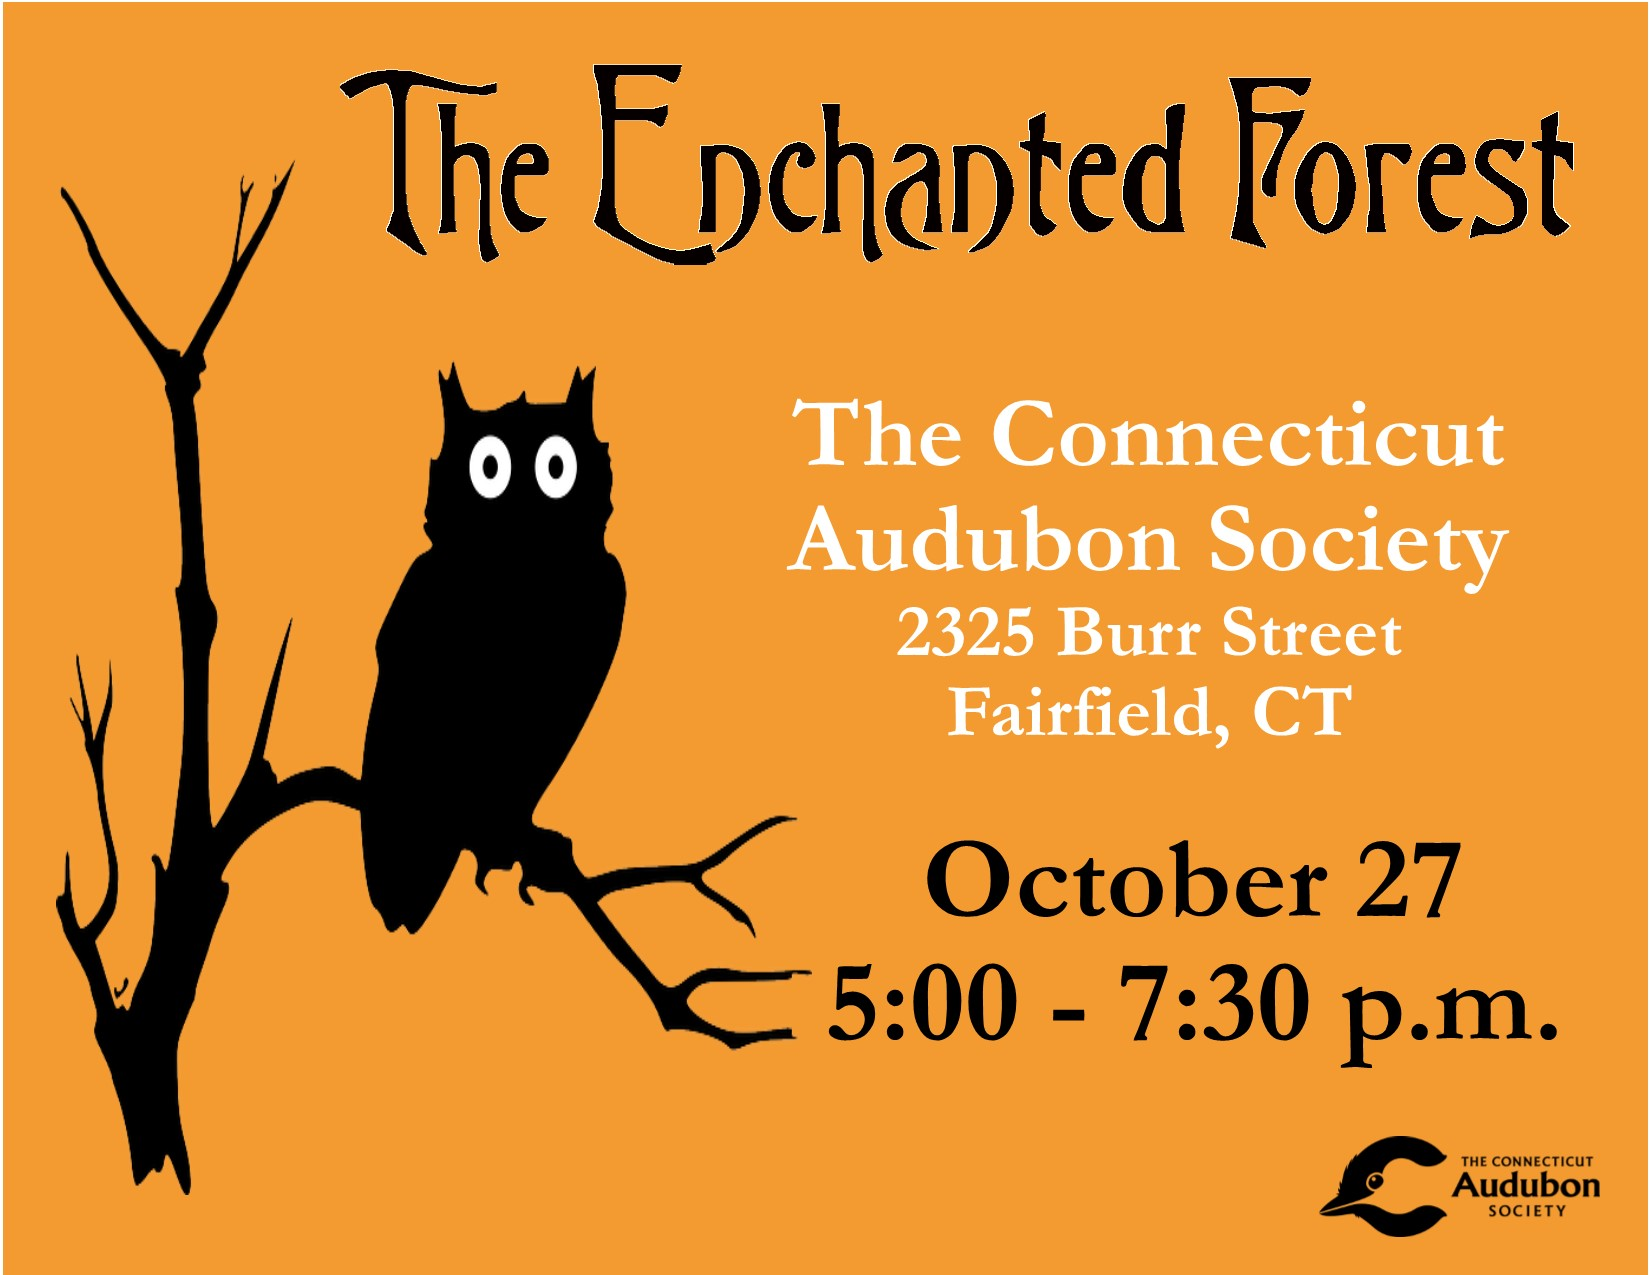 October 27th 2020 Halloween The Learning Experience CT Audubon Fairfield's Enchanted Forest, Oct. 27